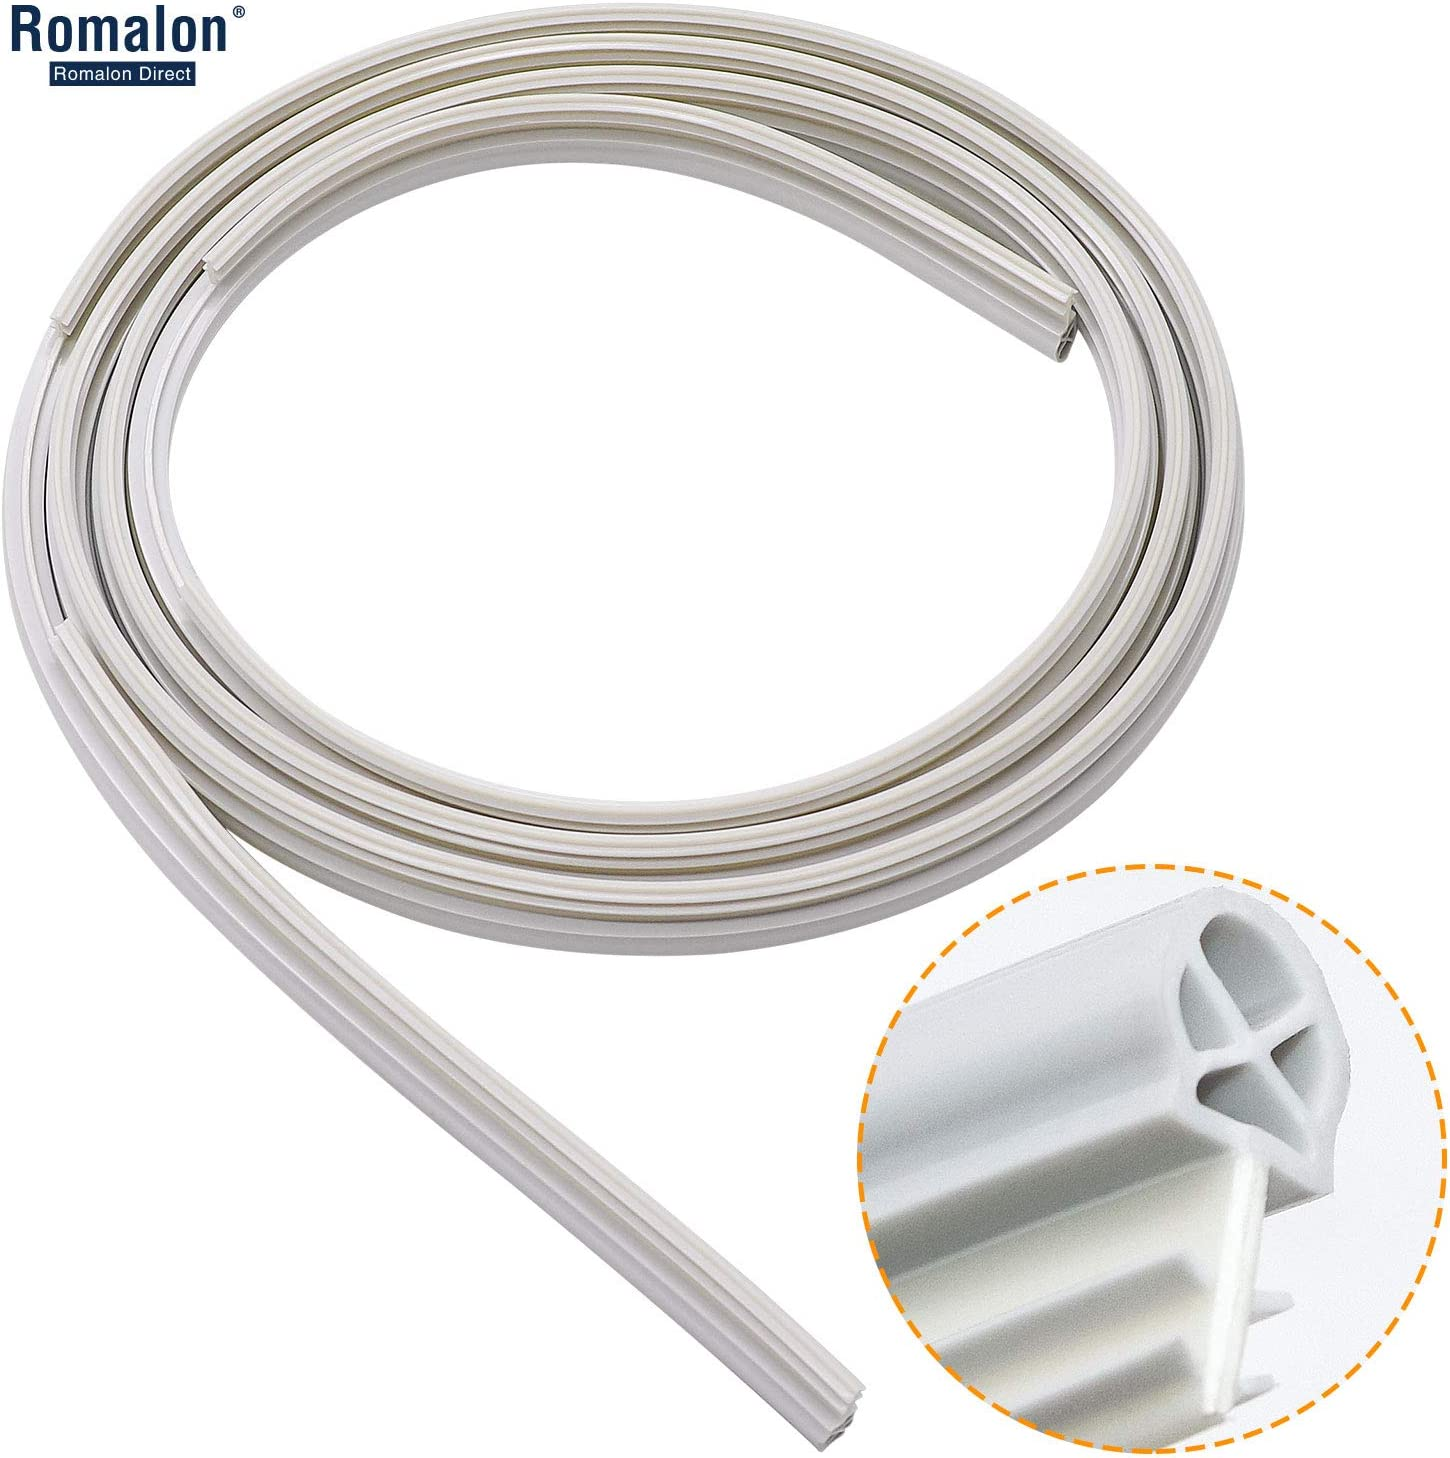 Romalon WD08X10057 Dishwasher Door Gasket for GE,Hotpoint,Kenmore, Part#AP3798079,EAP958908,PS958908,WD08X10014,WD8X10014,1088473